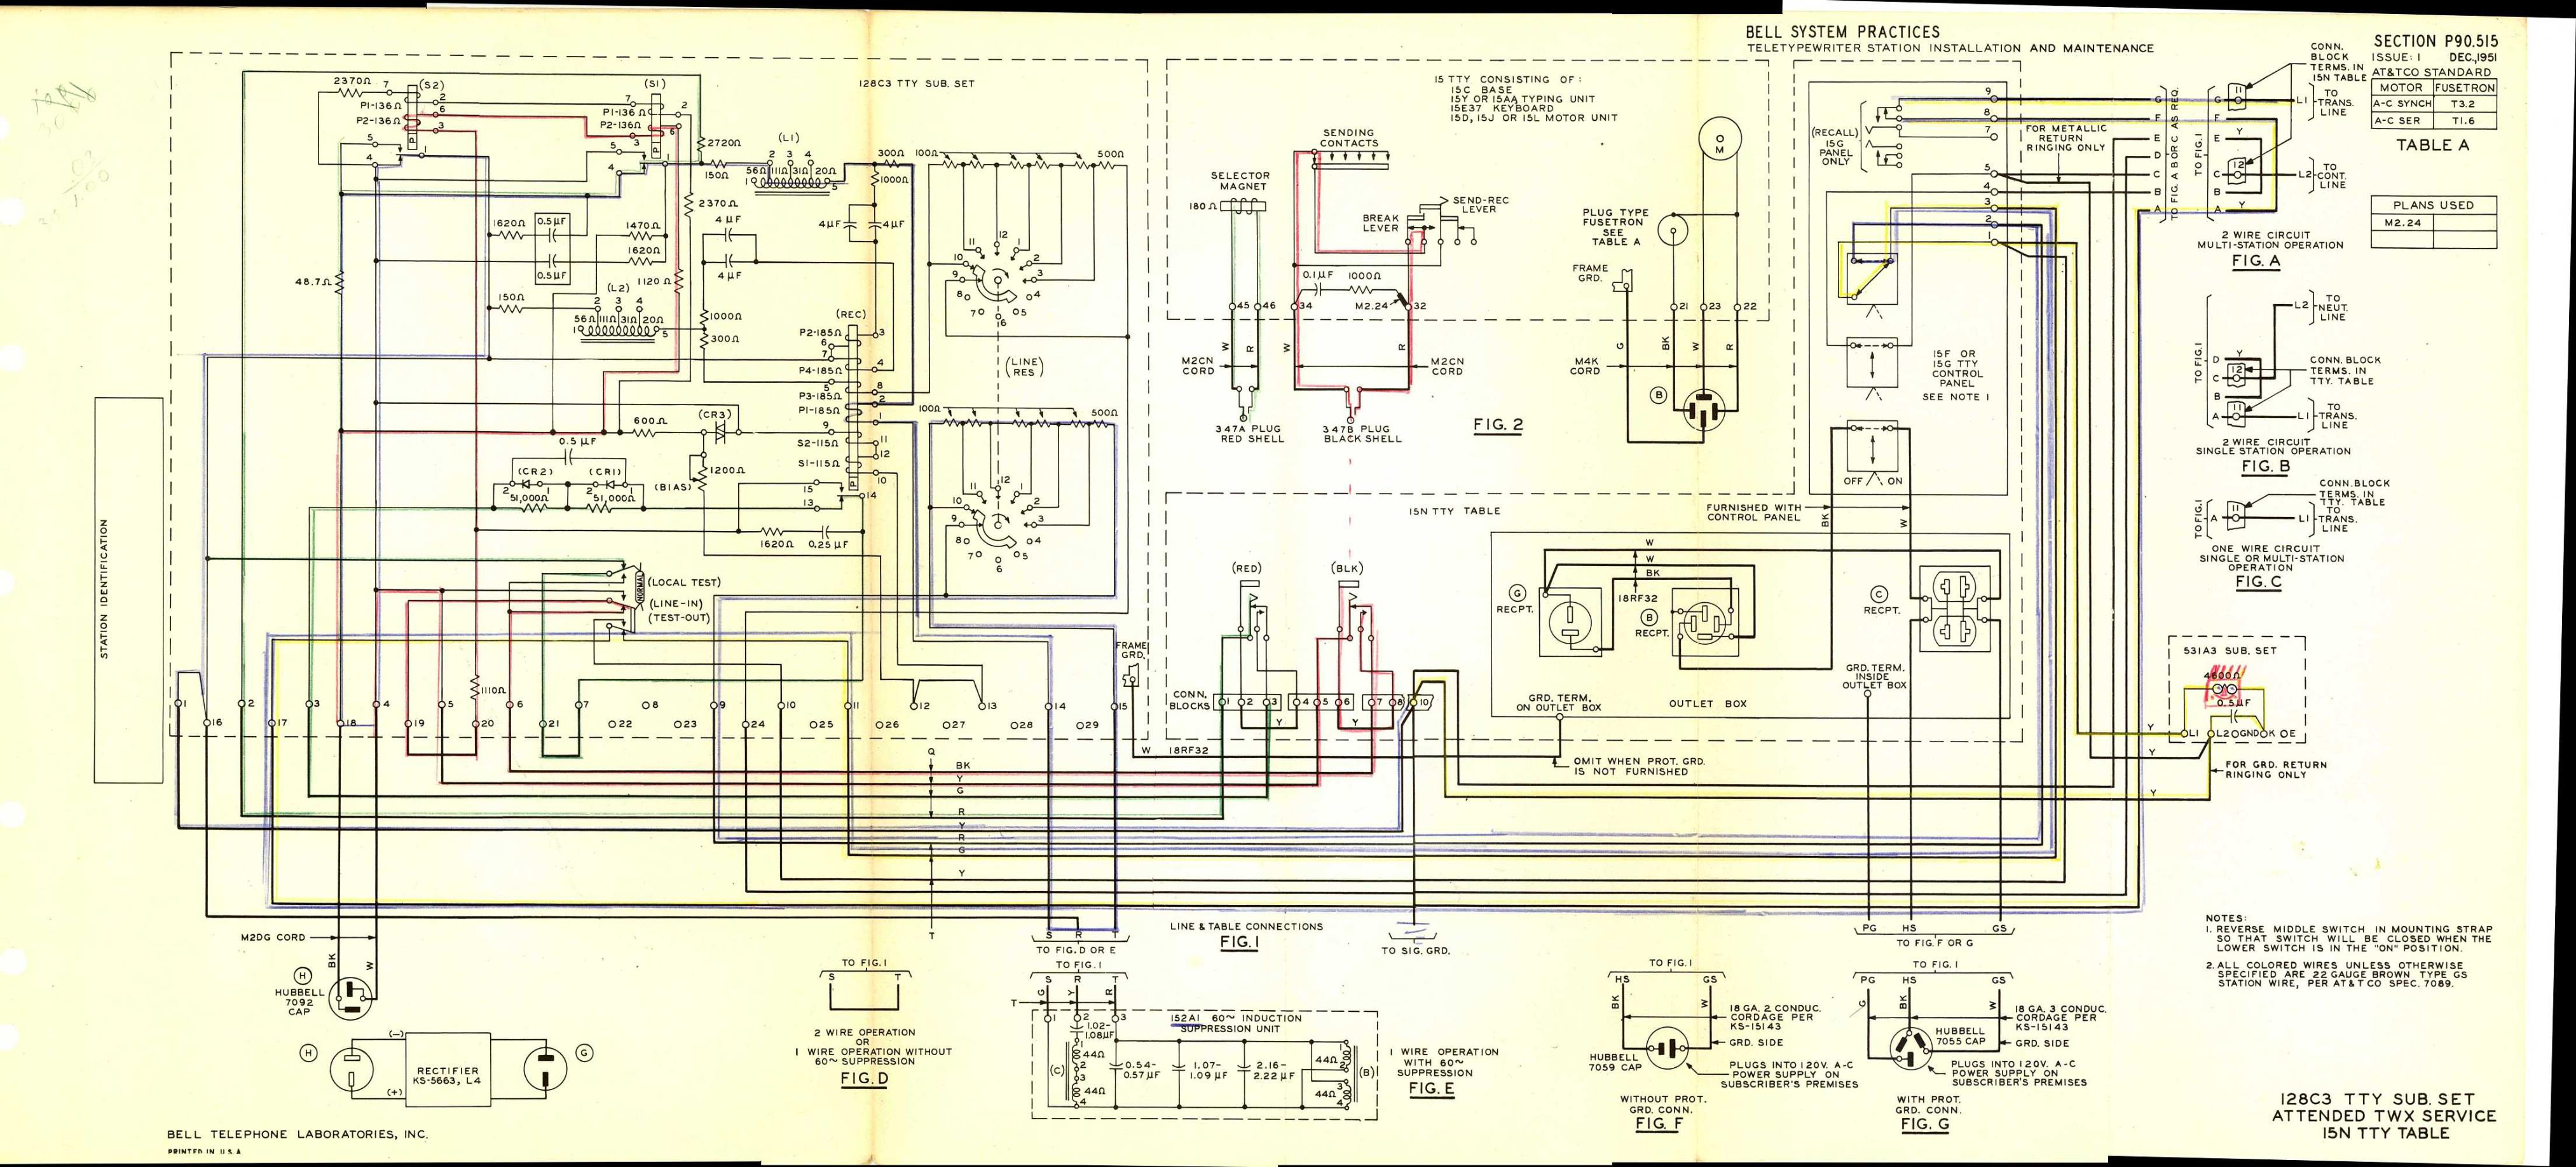 automotive wiring diagrams manual vdo water temp gauge diagram teletype corp. maintenance, installation, operation, and parts publications